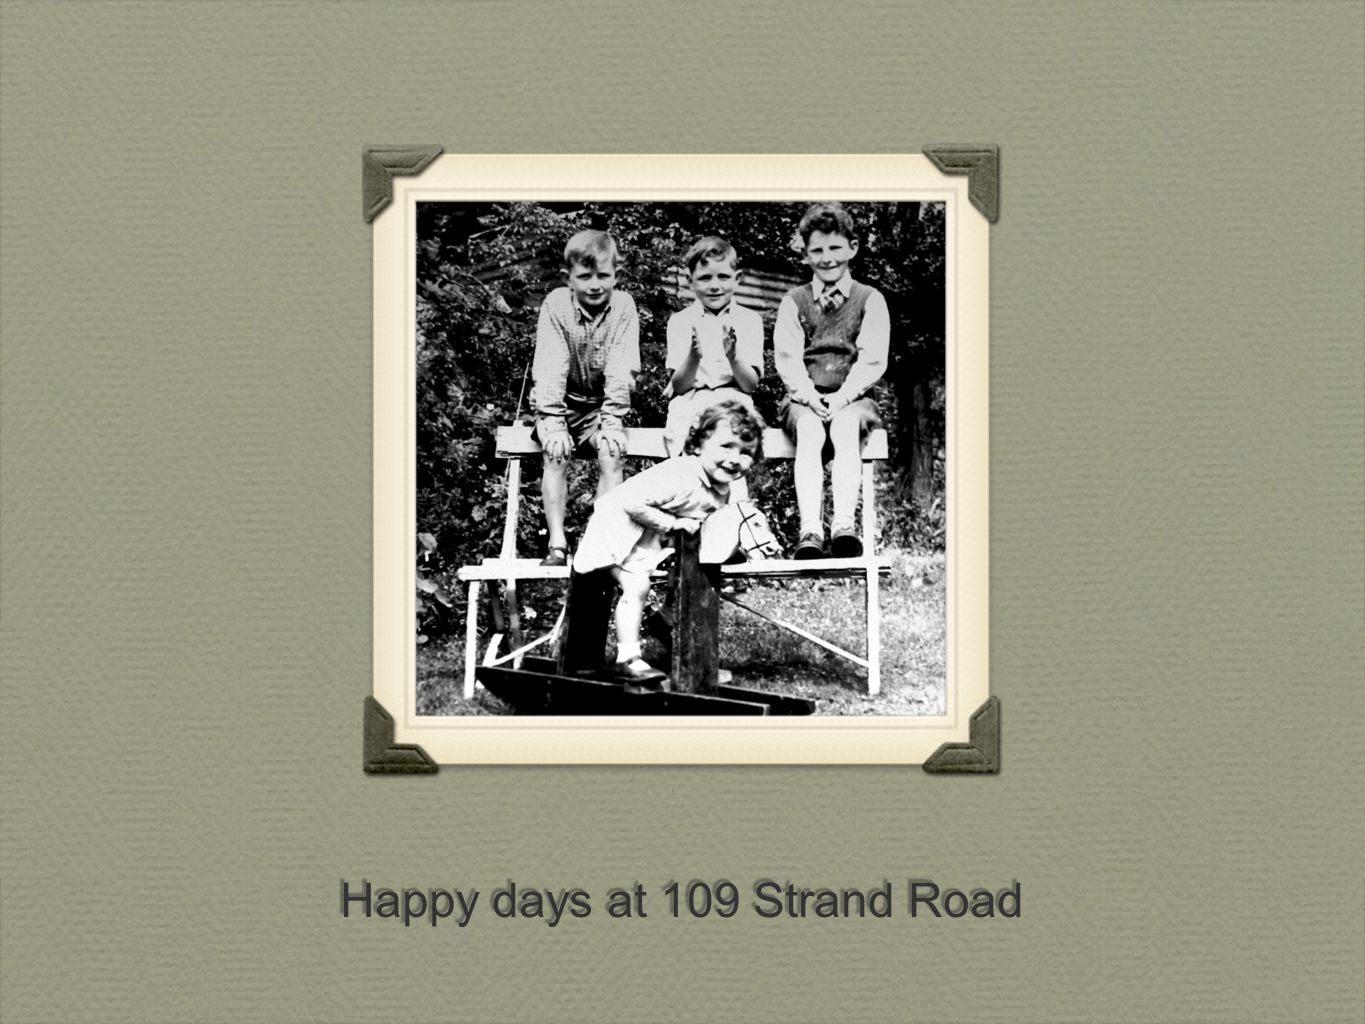 Happy days at 109 Strand Road